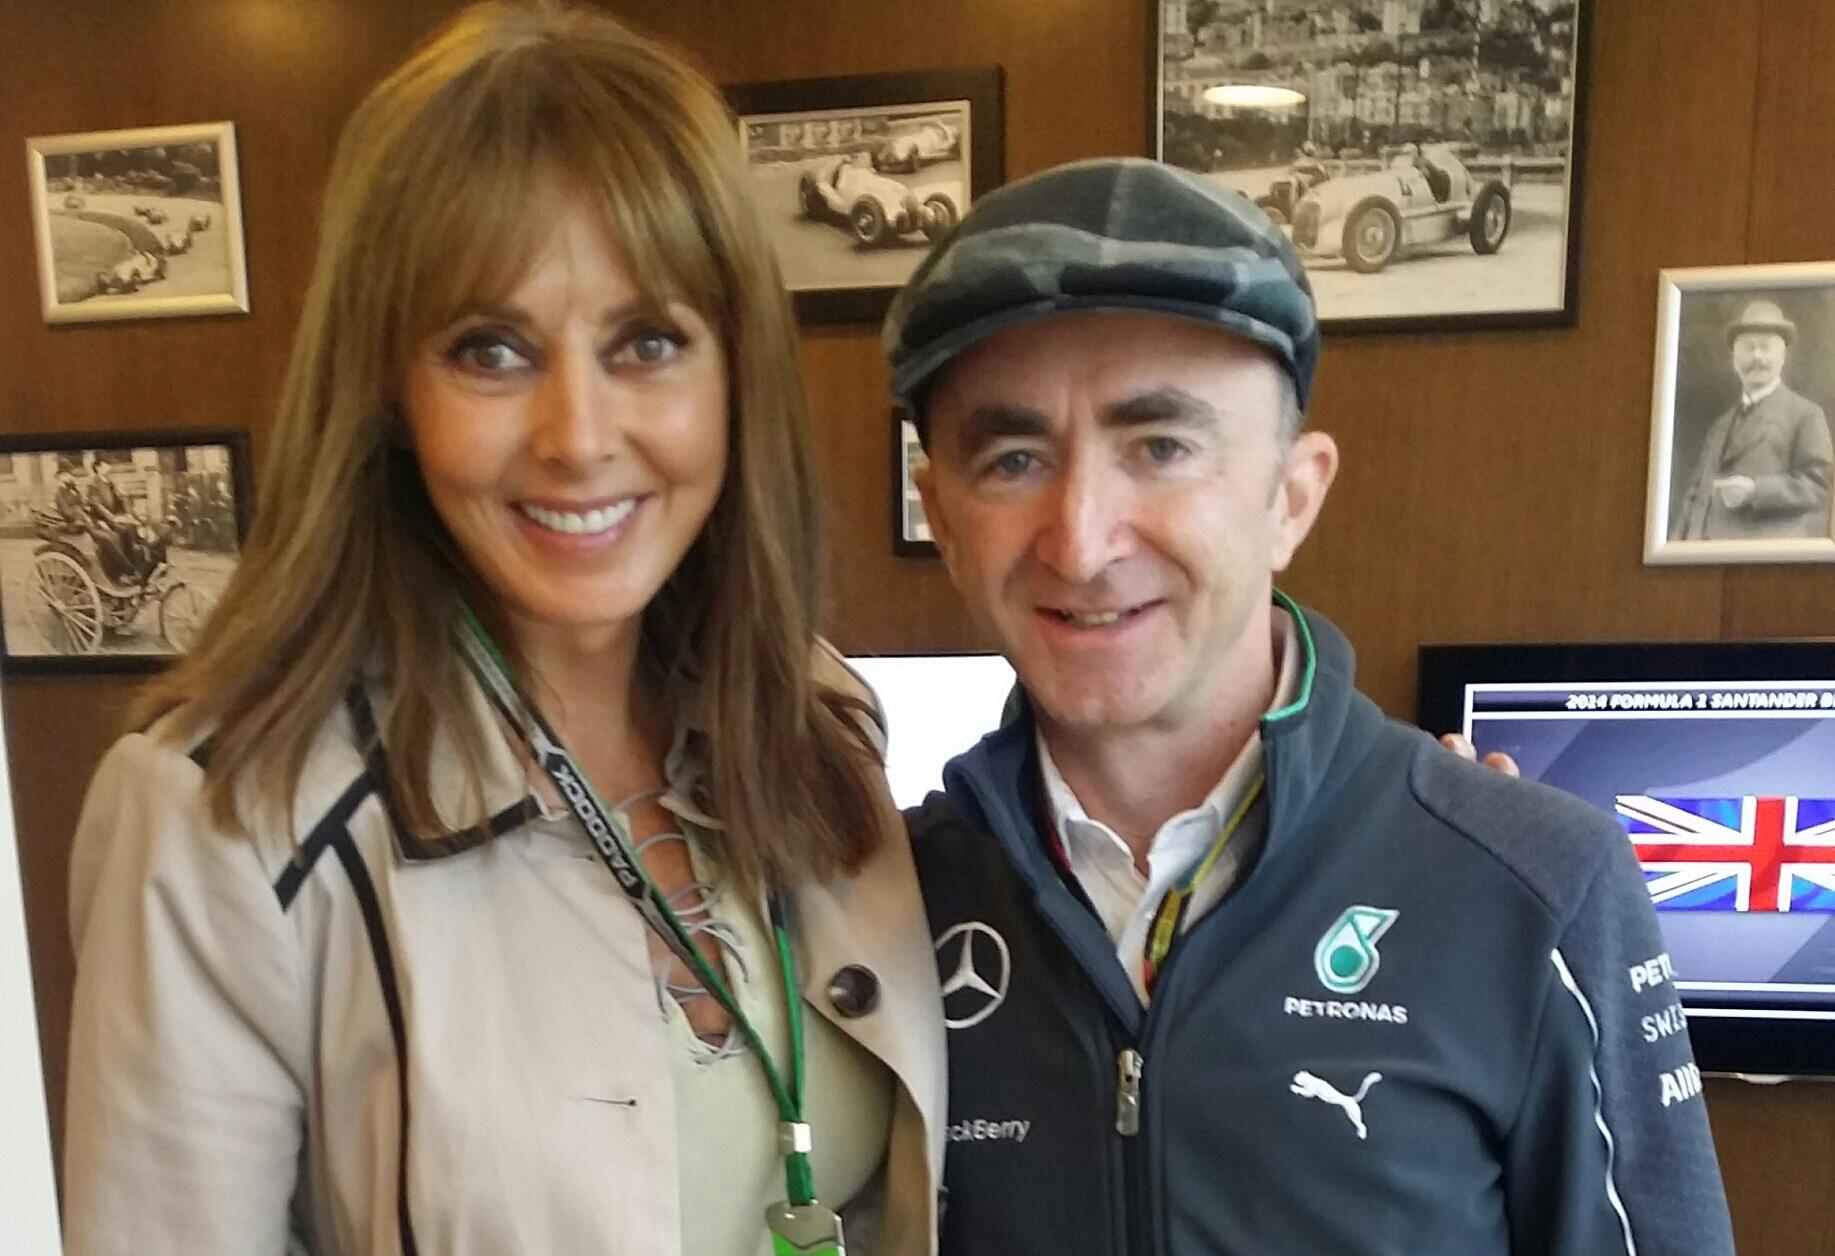 Me and @MercedesAMGF1 engineering guru @paddylowe ....got our engineering degrees from same tiny college in Cambridge http://t.co/SeX53BGdEF